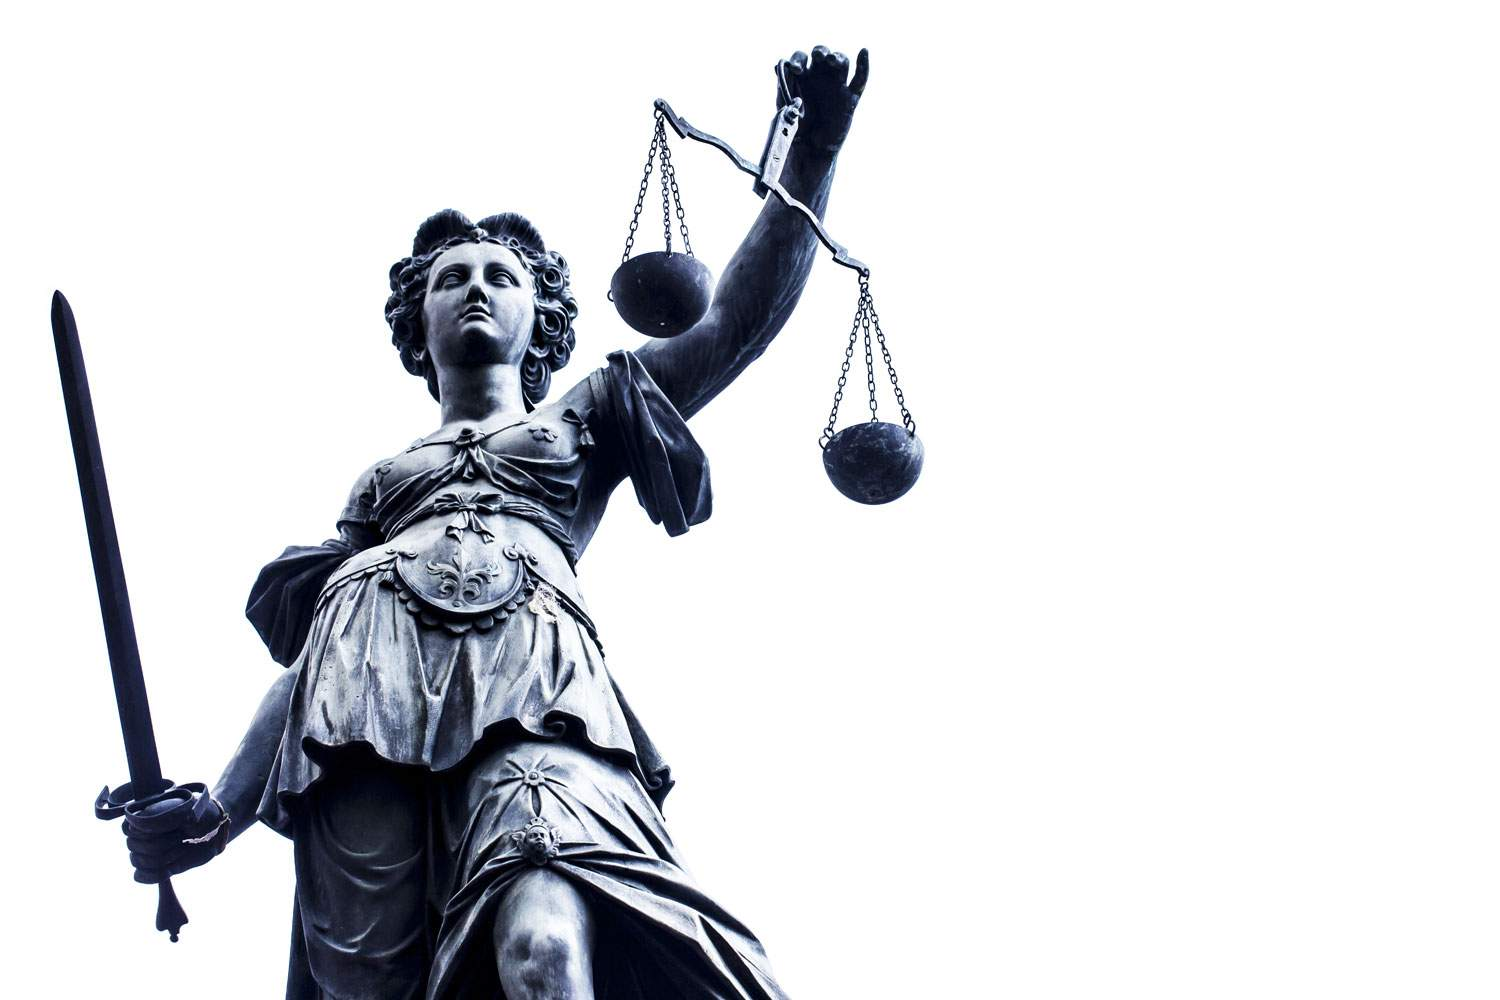 lady-justice-trial-by-jury-inventions-ancient-greeks-gave-us